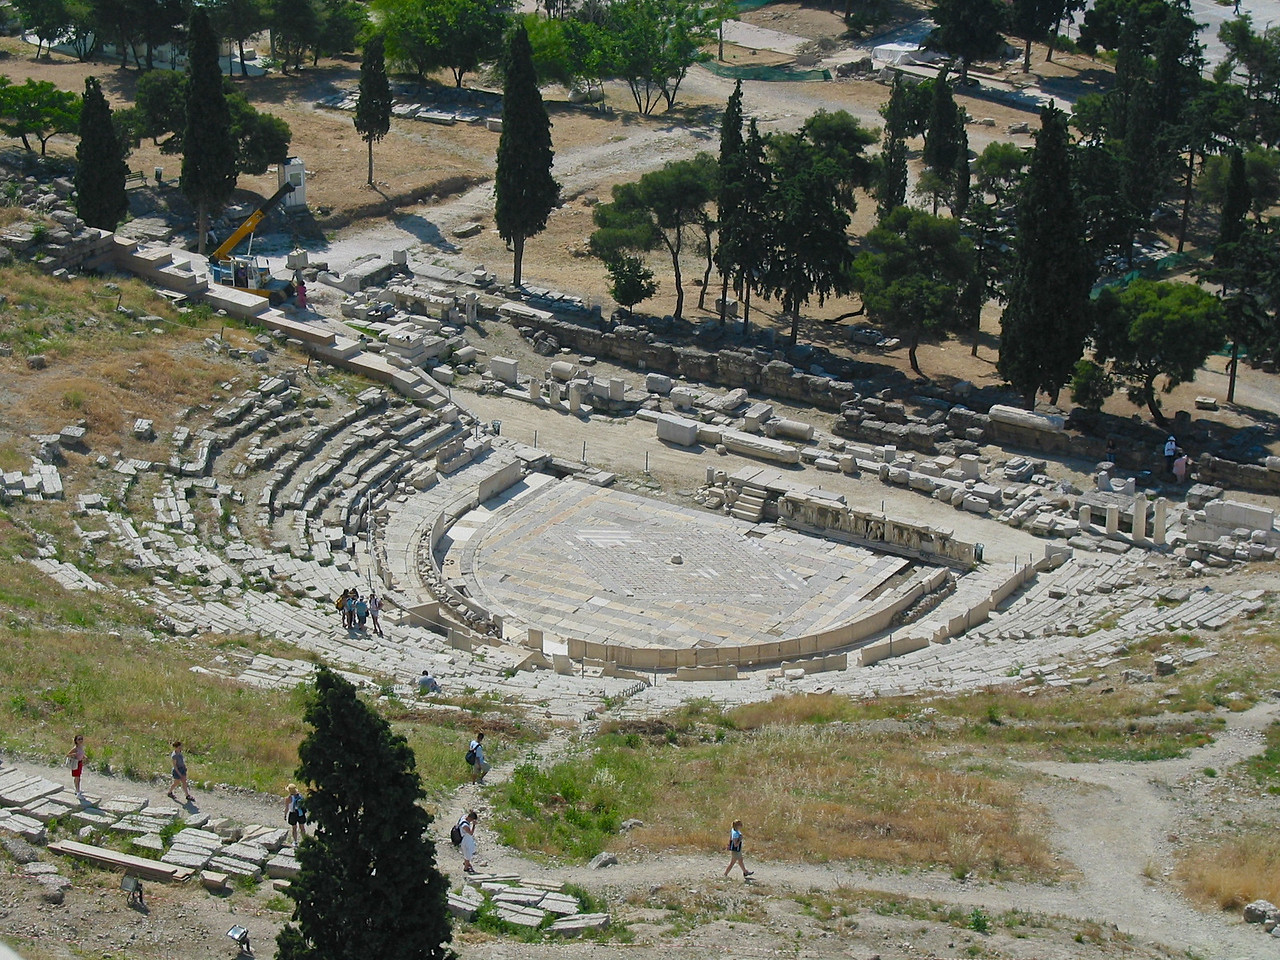 The site of the Theater of Dionysus Eleuthereus, on the south slope of the Athenian Acropolis, has been known since the 18th century. The Greek Archaeological Society excavated the remains of the theater beginning in 1838 and throughout most of the following century. Early remains in the area relating to the cult of Dionysus Eleuthereus have been dated to the sixth century BCE, during the rule of Peisistratus and his successors, but a theater was apparently not built on the site until the fifth century BCE. The only certain evidence of this early theater consists of a few stone blocks that were reused in the fourth century BCE.